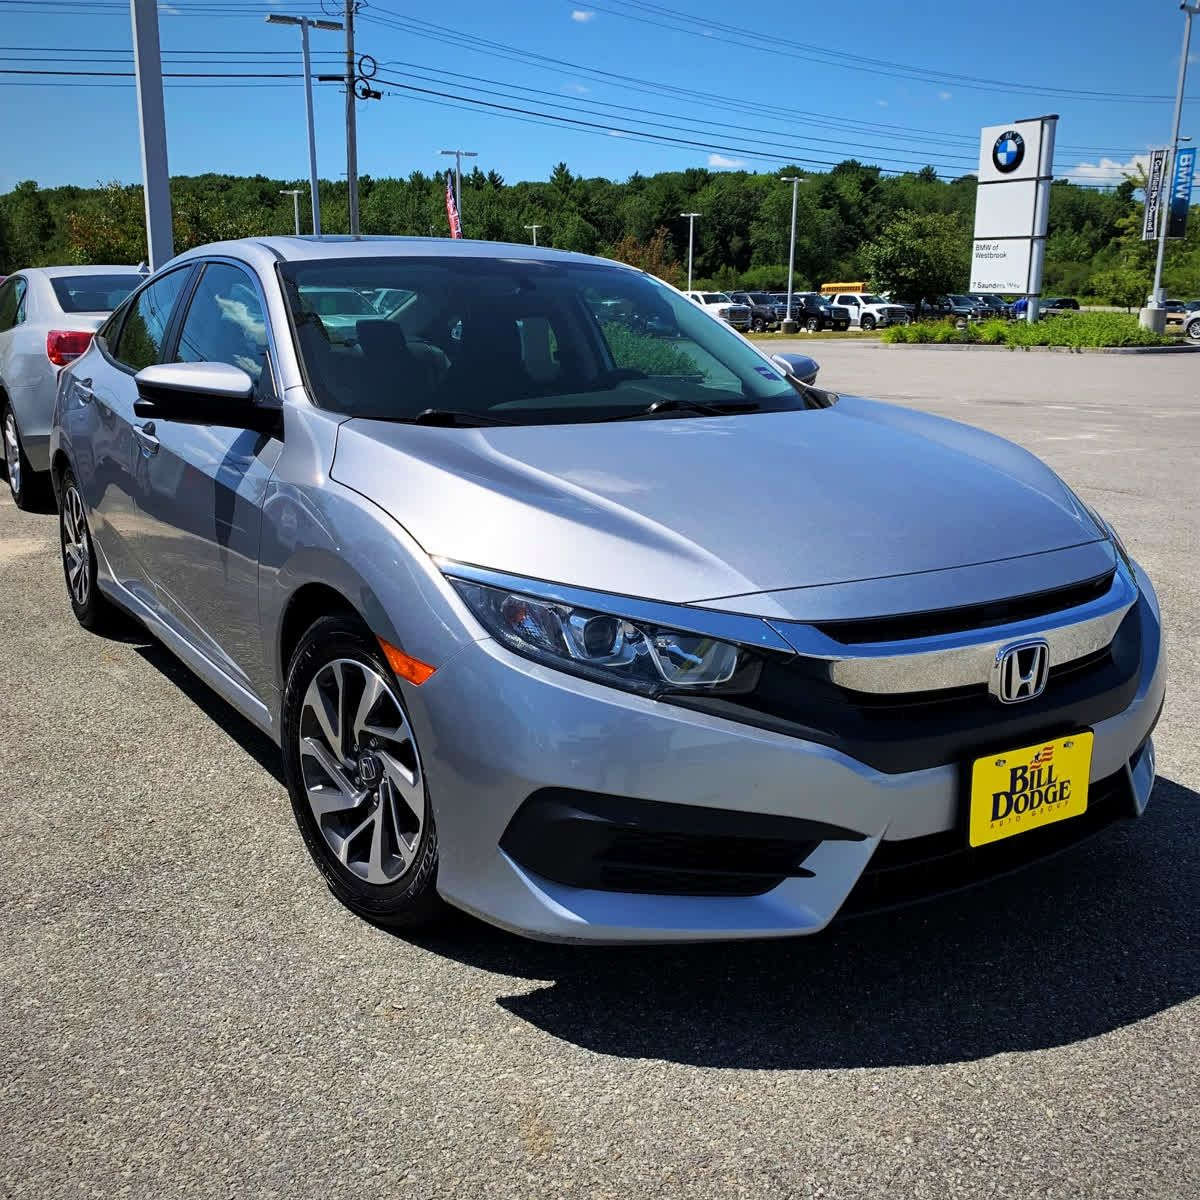 2016 Honda Civic Ex See More Info Bit Ly 16civicex On Sale For 15 200 Under 45k Miles Certified Carf Honda Civic 2016 Honda Civic Ex Civic Ex